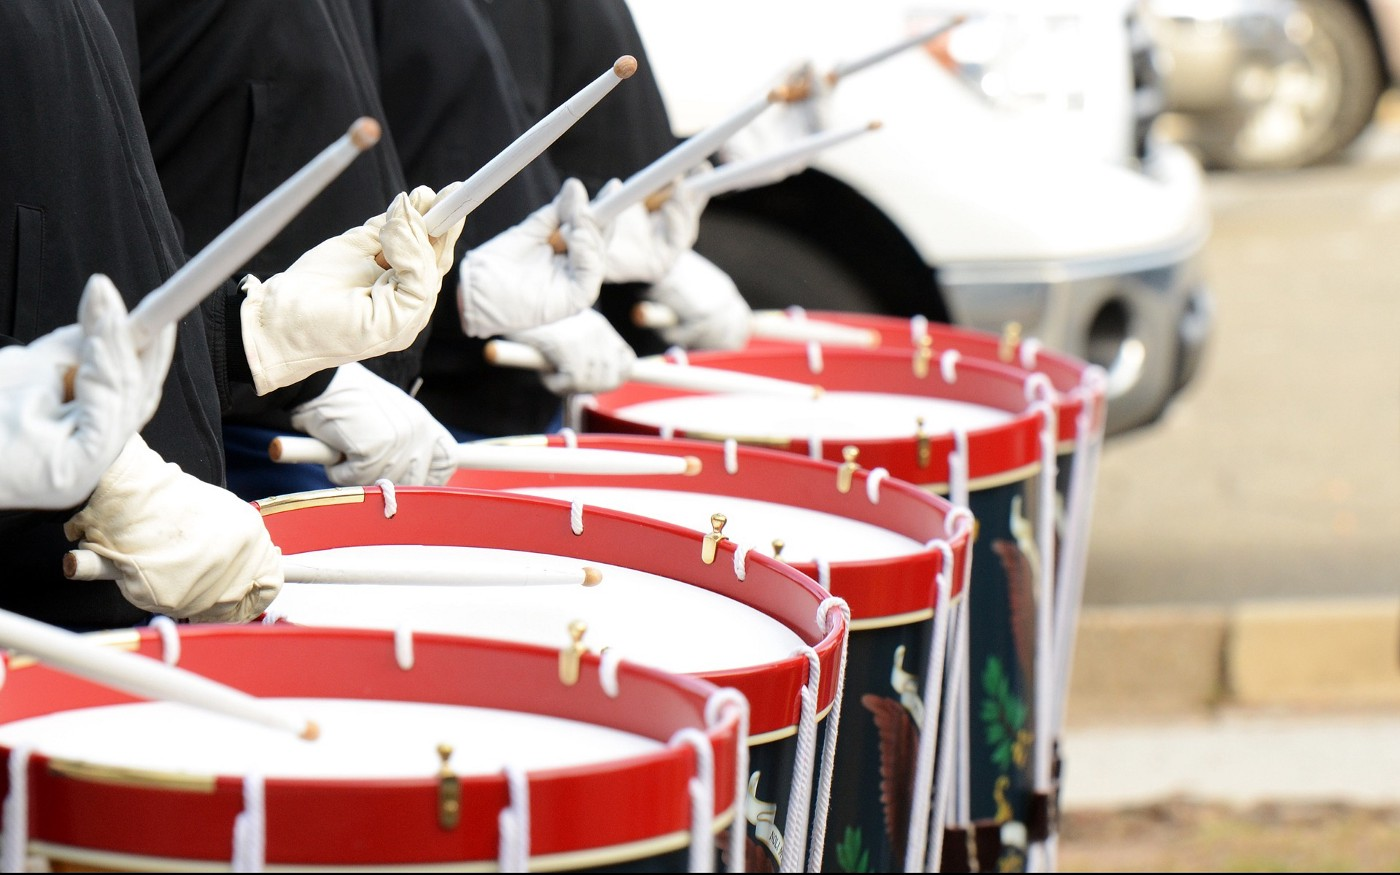 drums in marching band